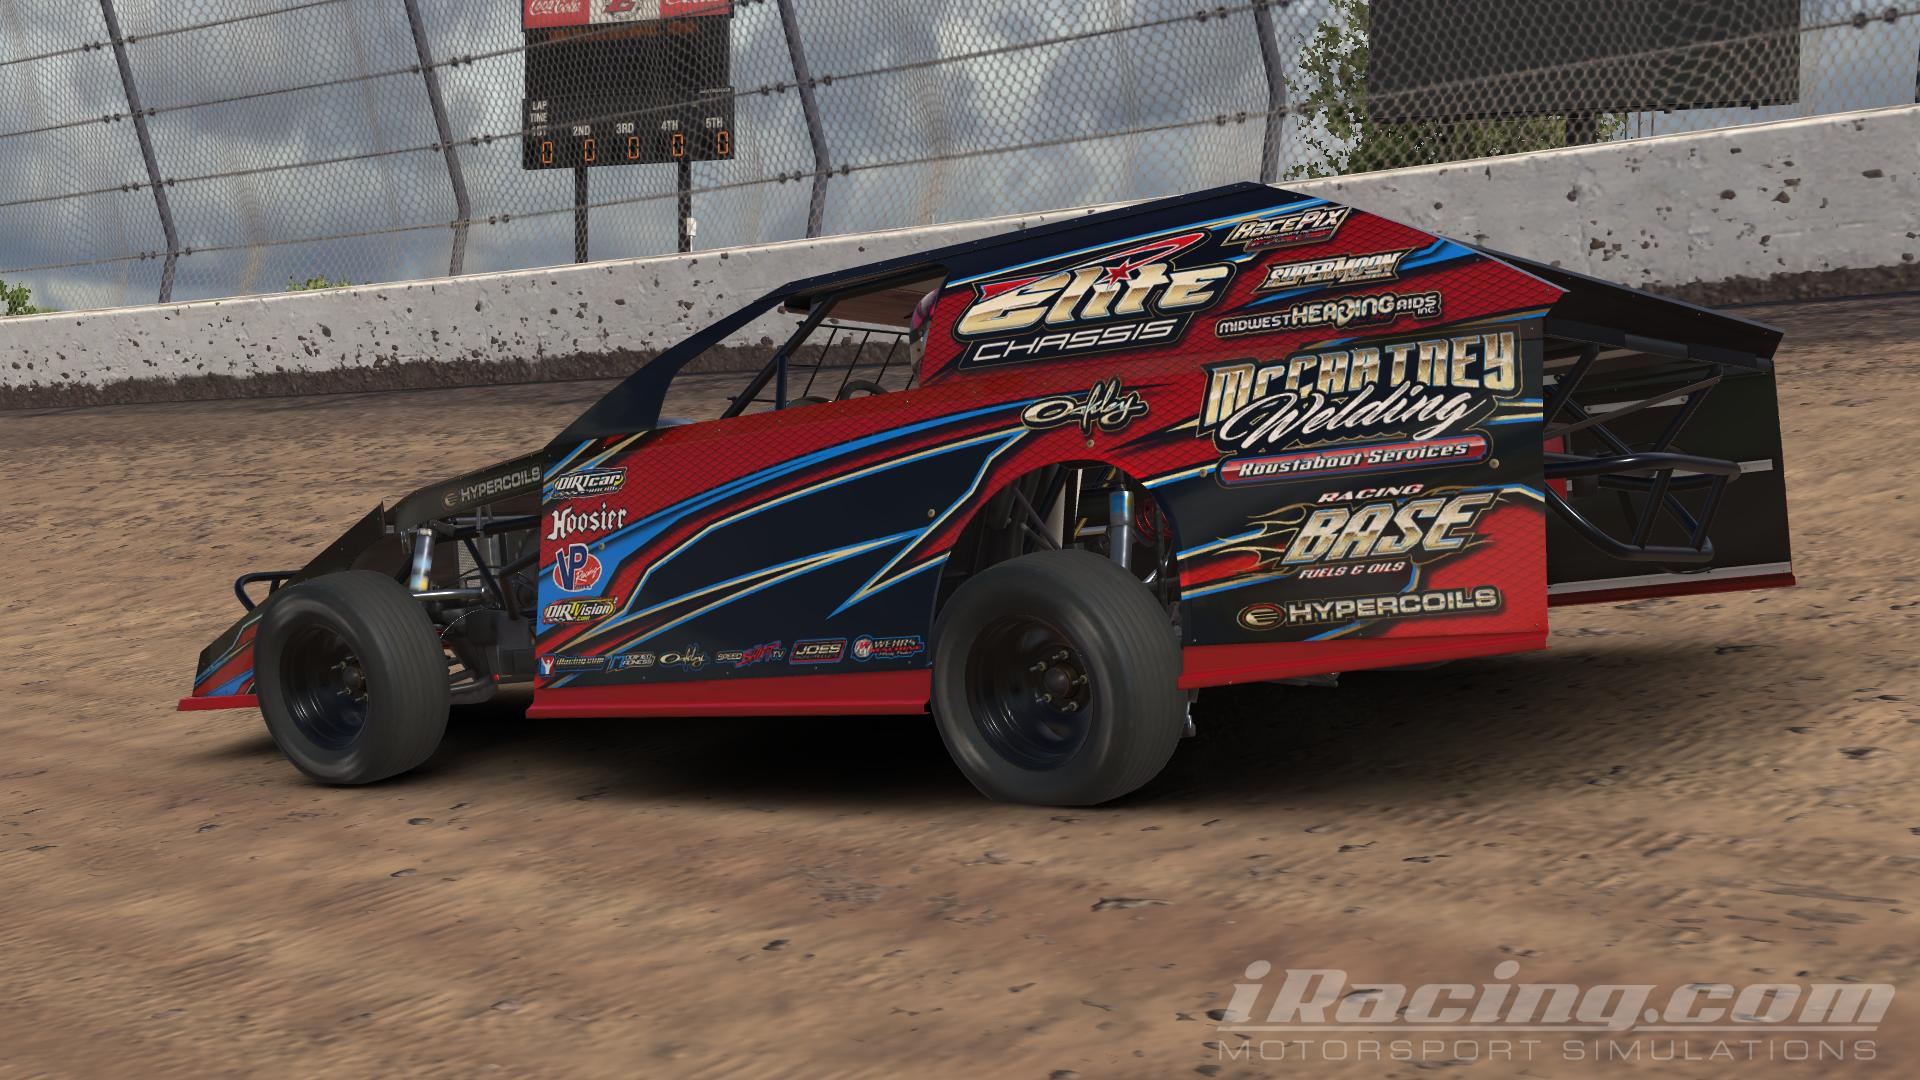 Preview of Red gold car 71245 by Jerry Hockett